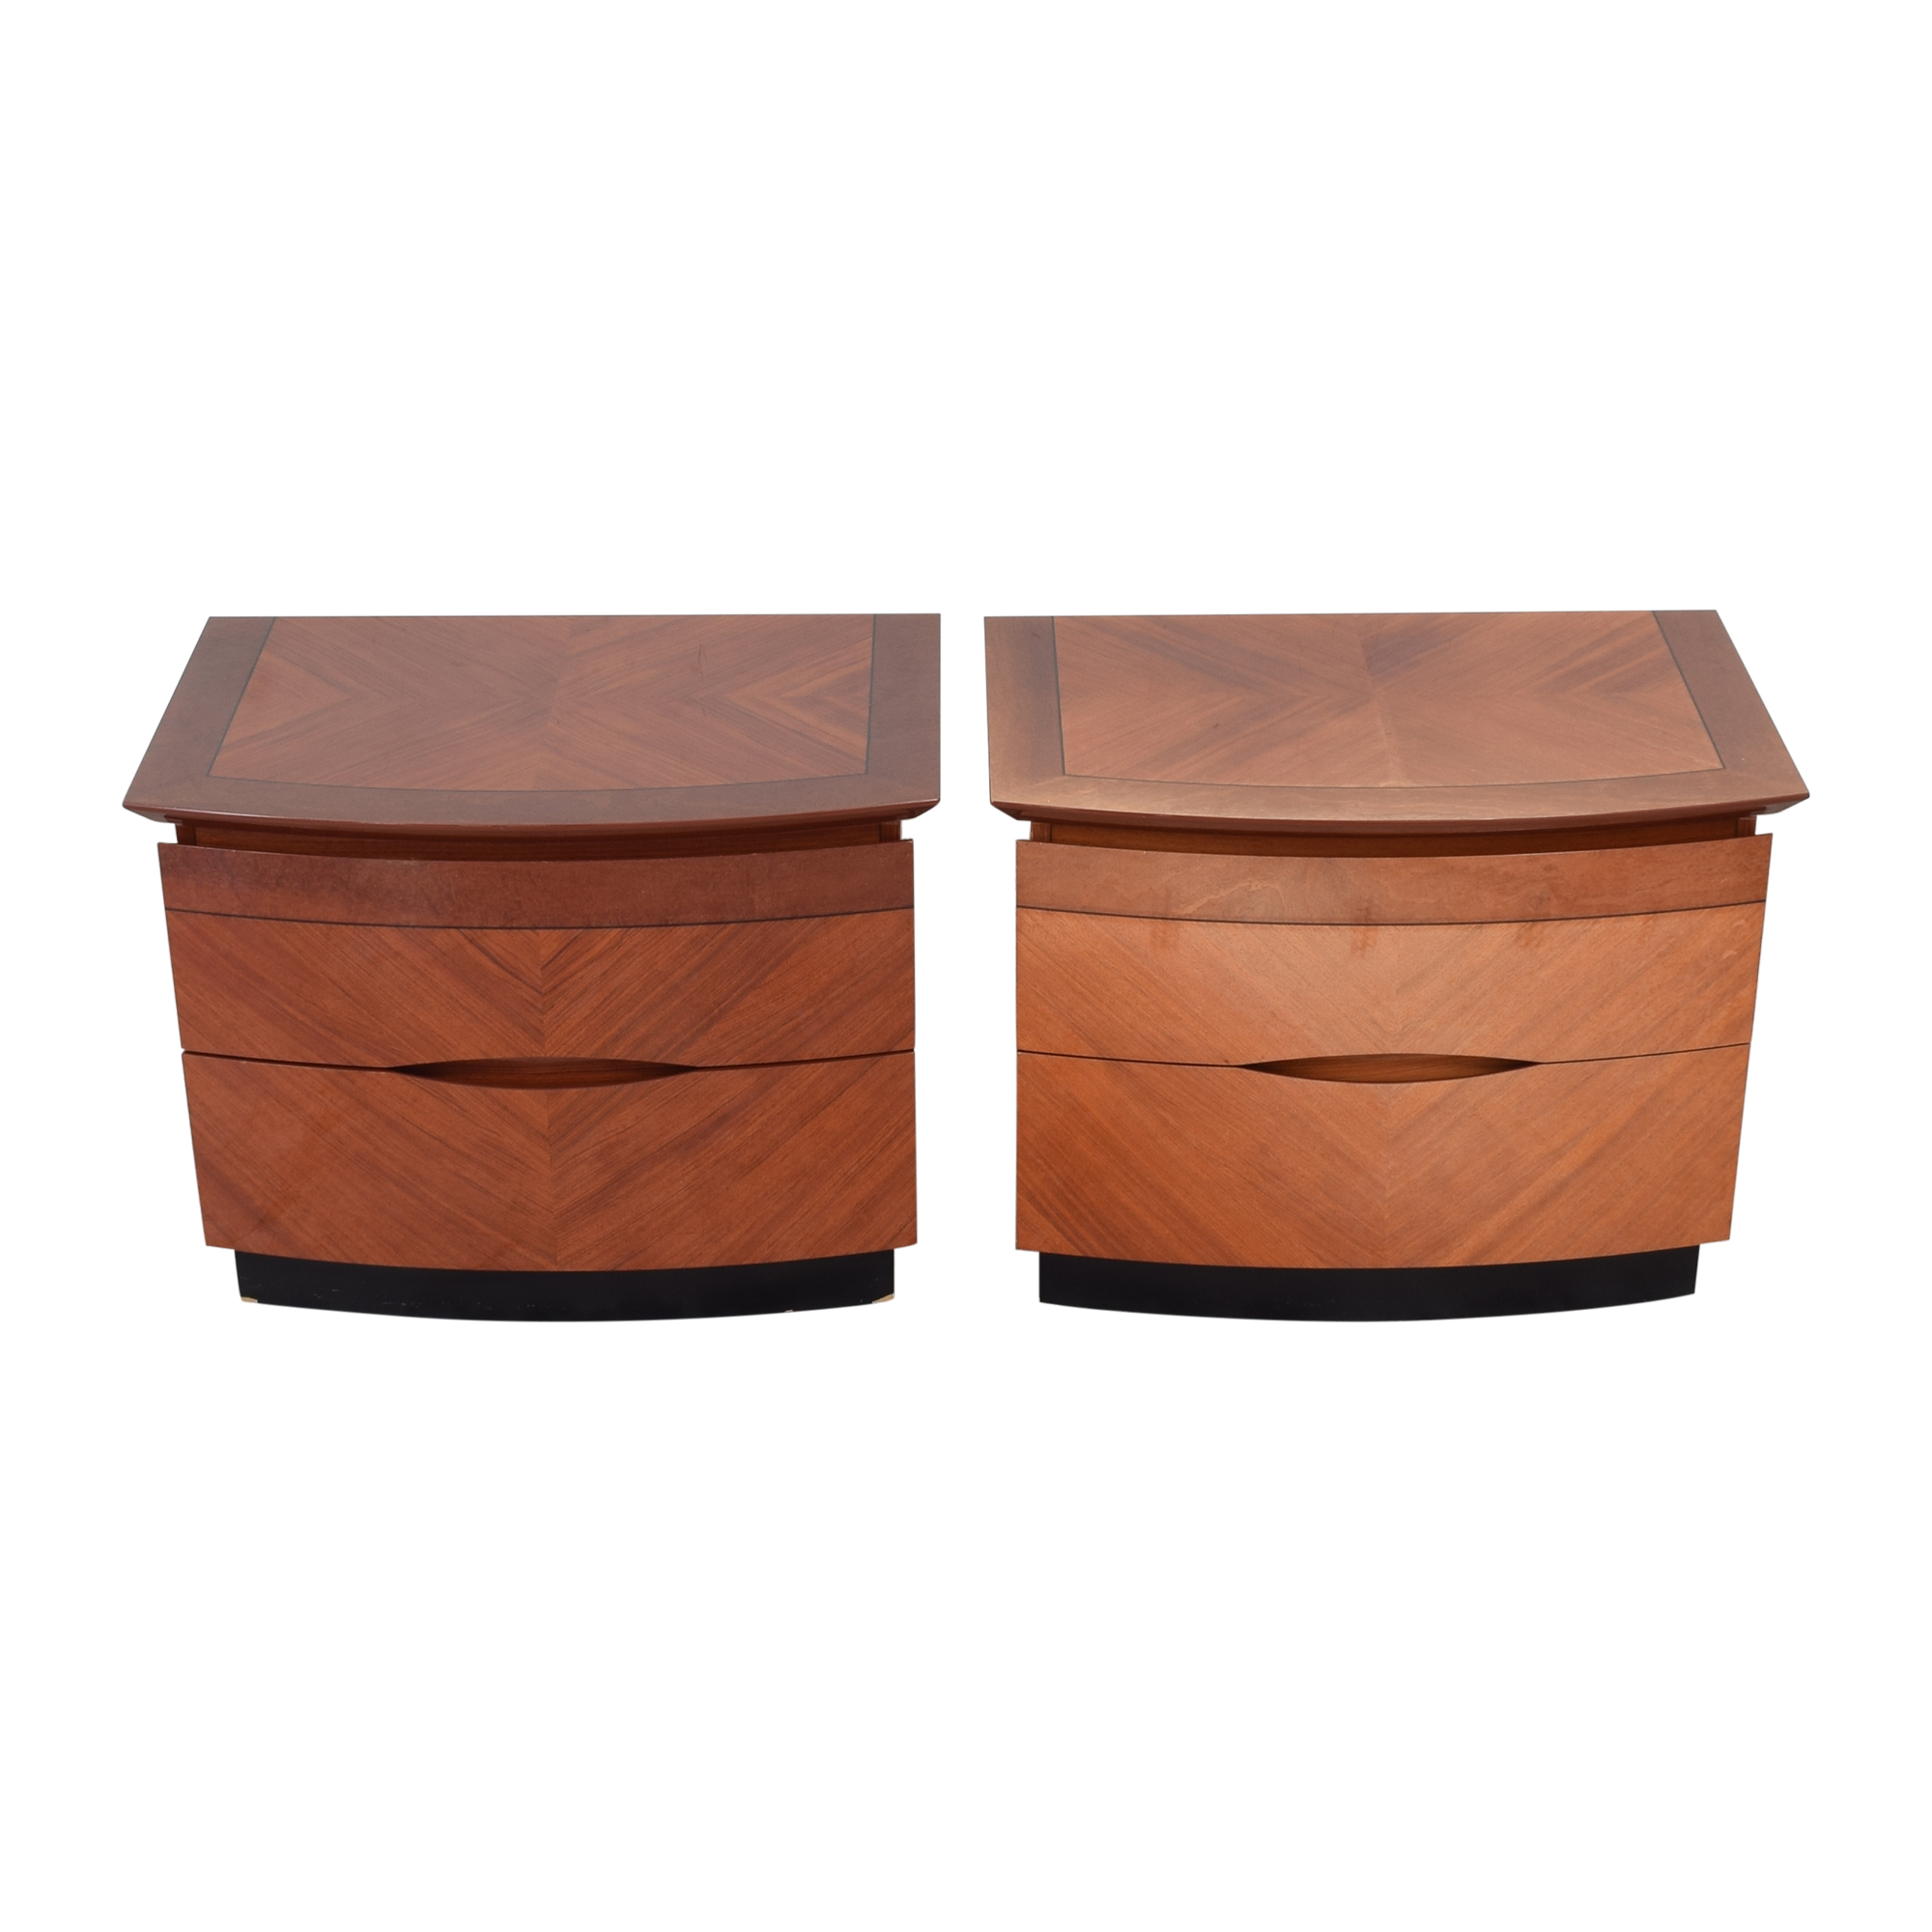 Two Drawer Nightstands brown